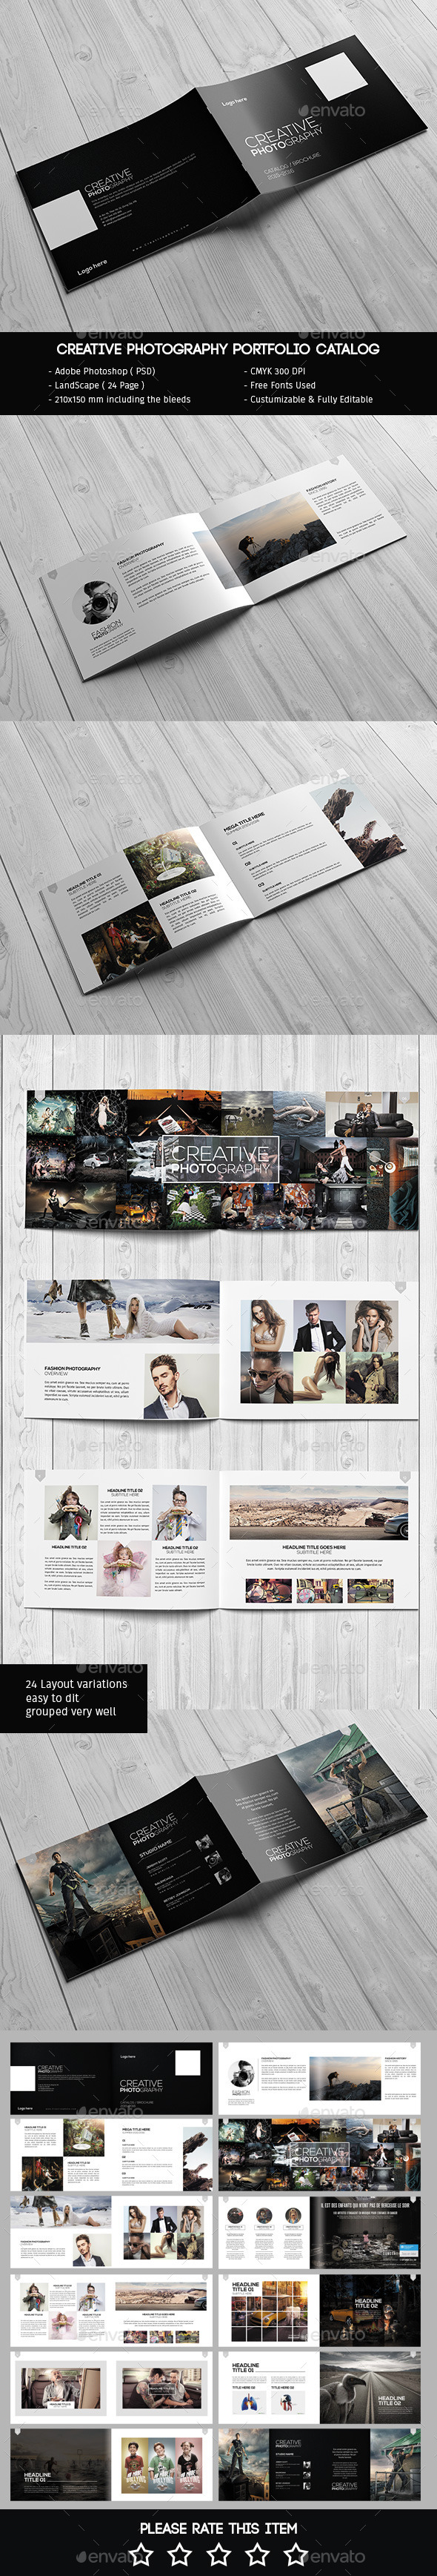 GraphicRiver Creative Photography Portfolio Catalog Brochure 11947658